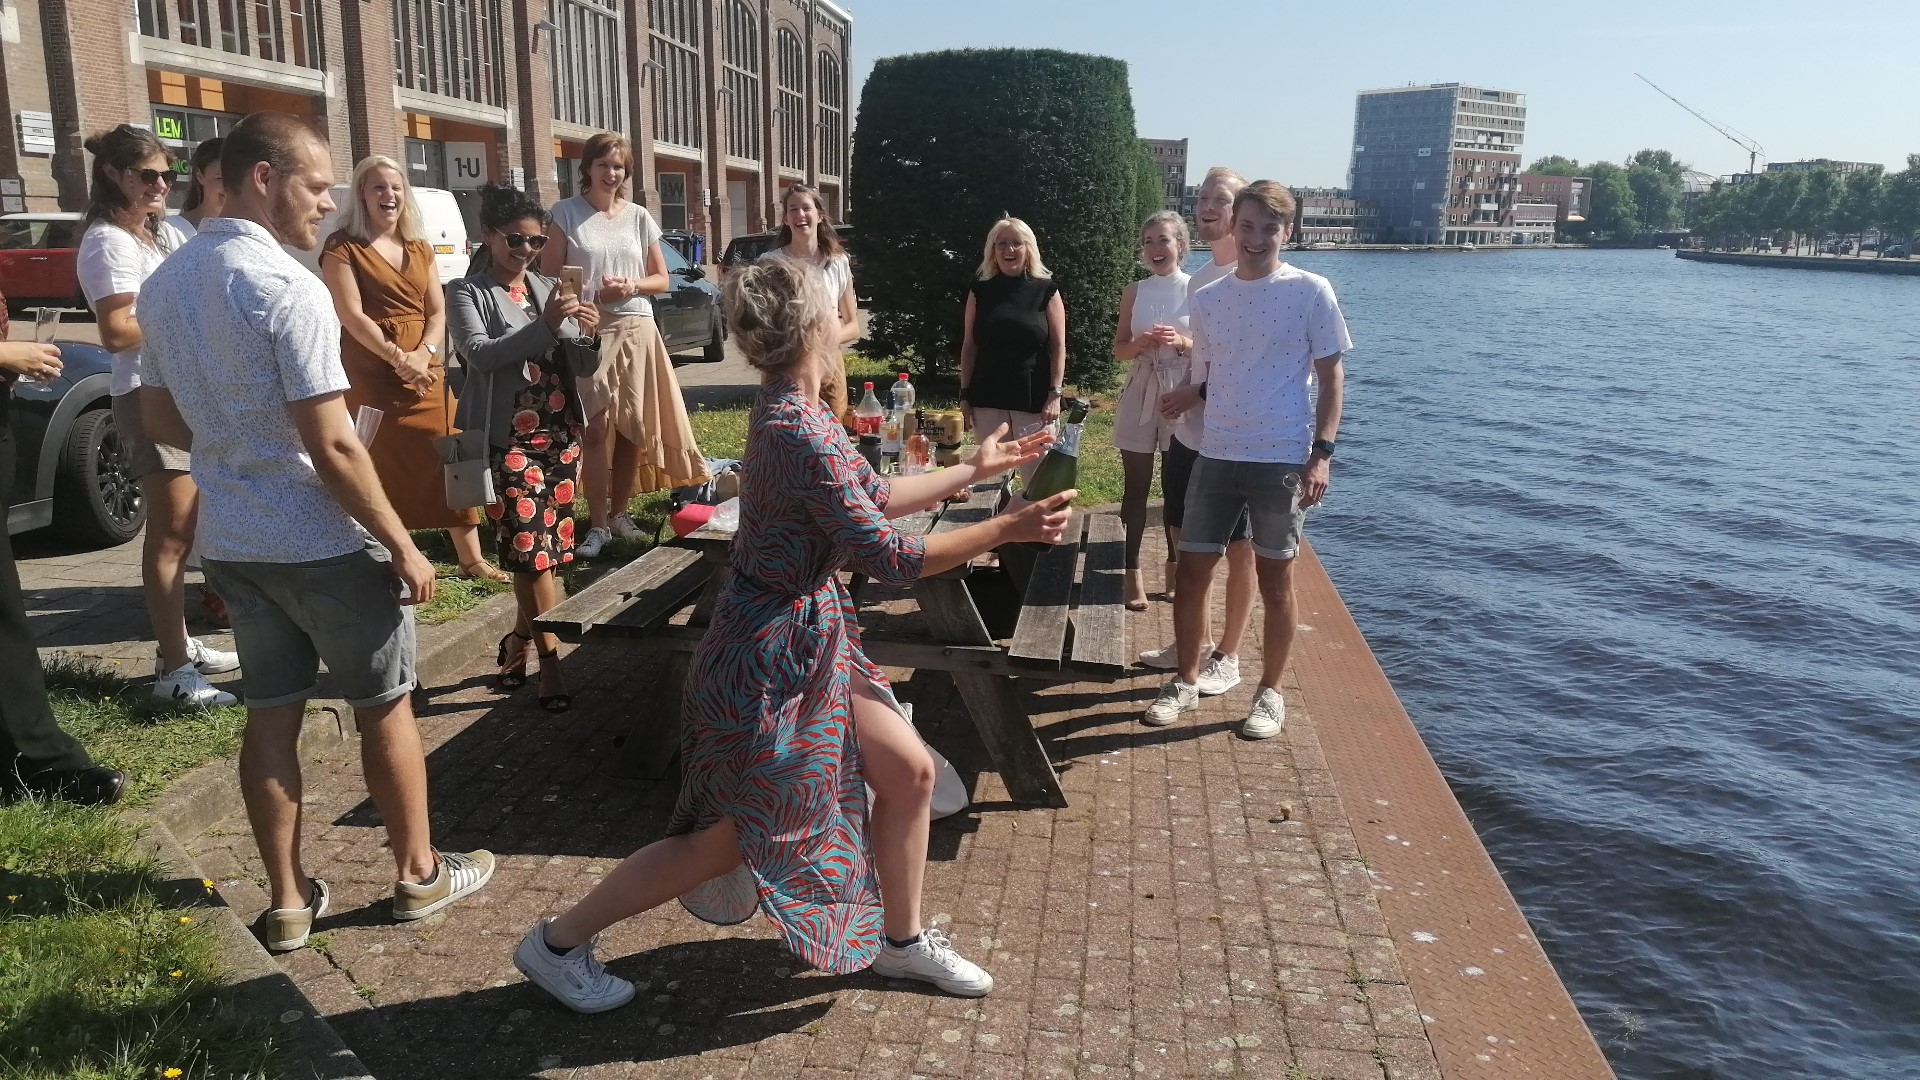 lyla popping champagne next to the canal in haarlem